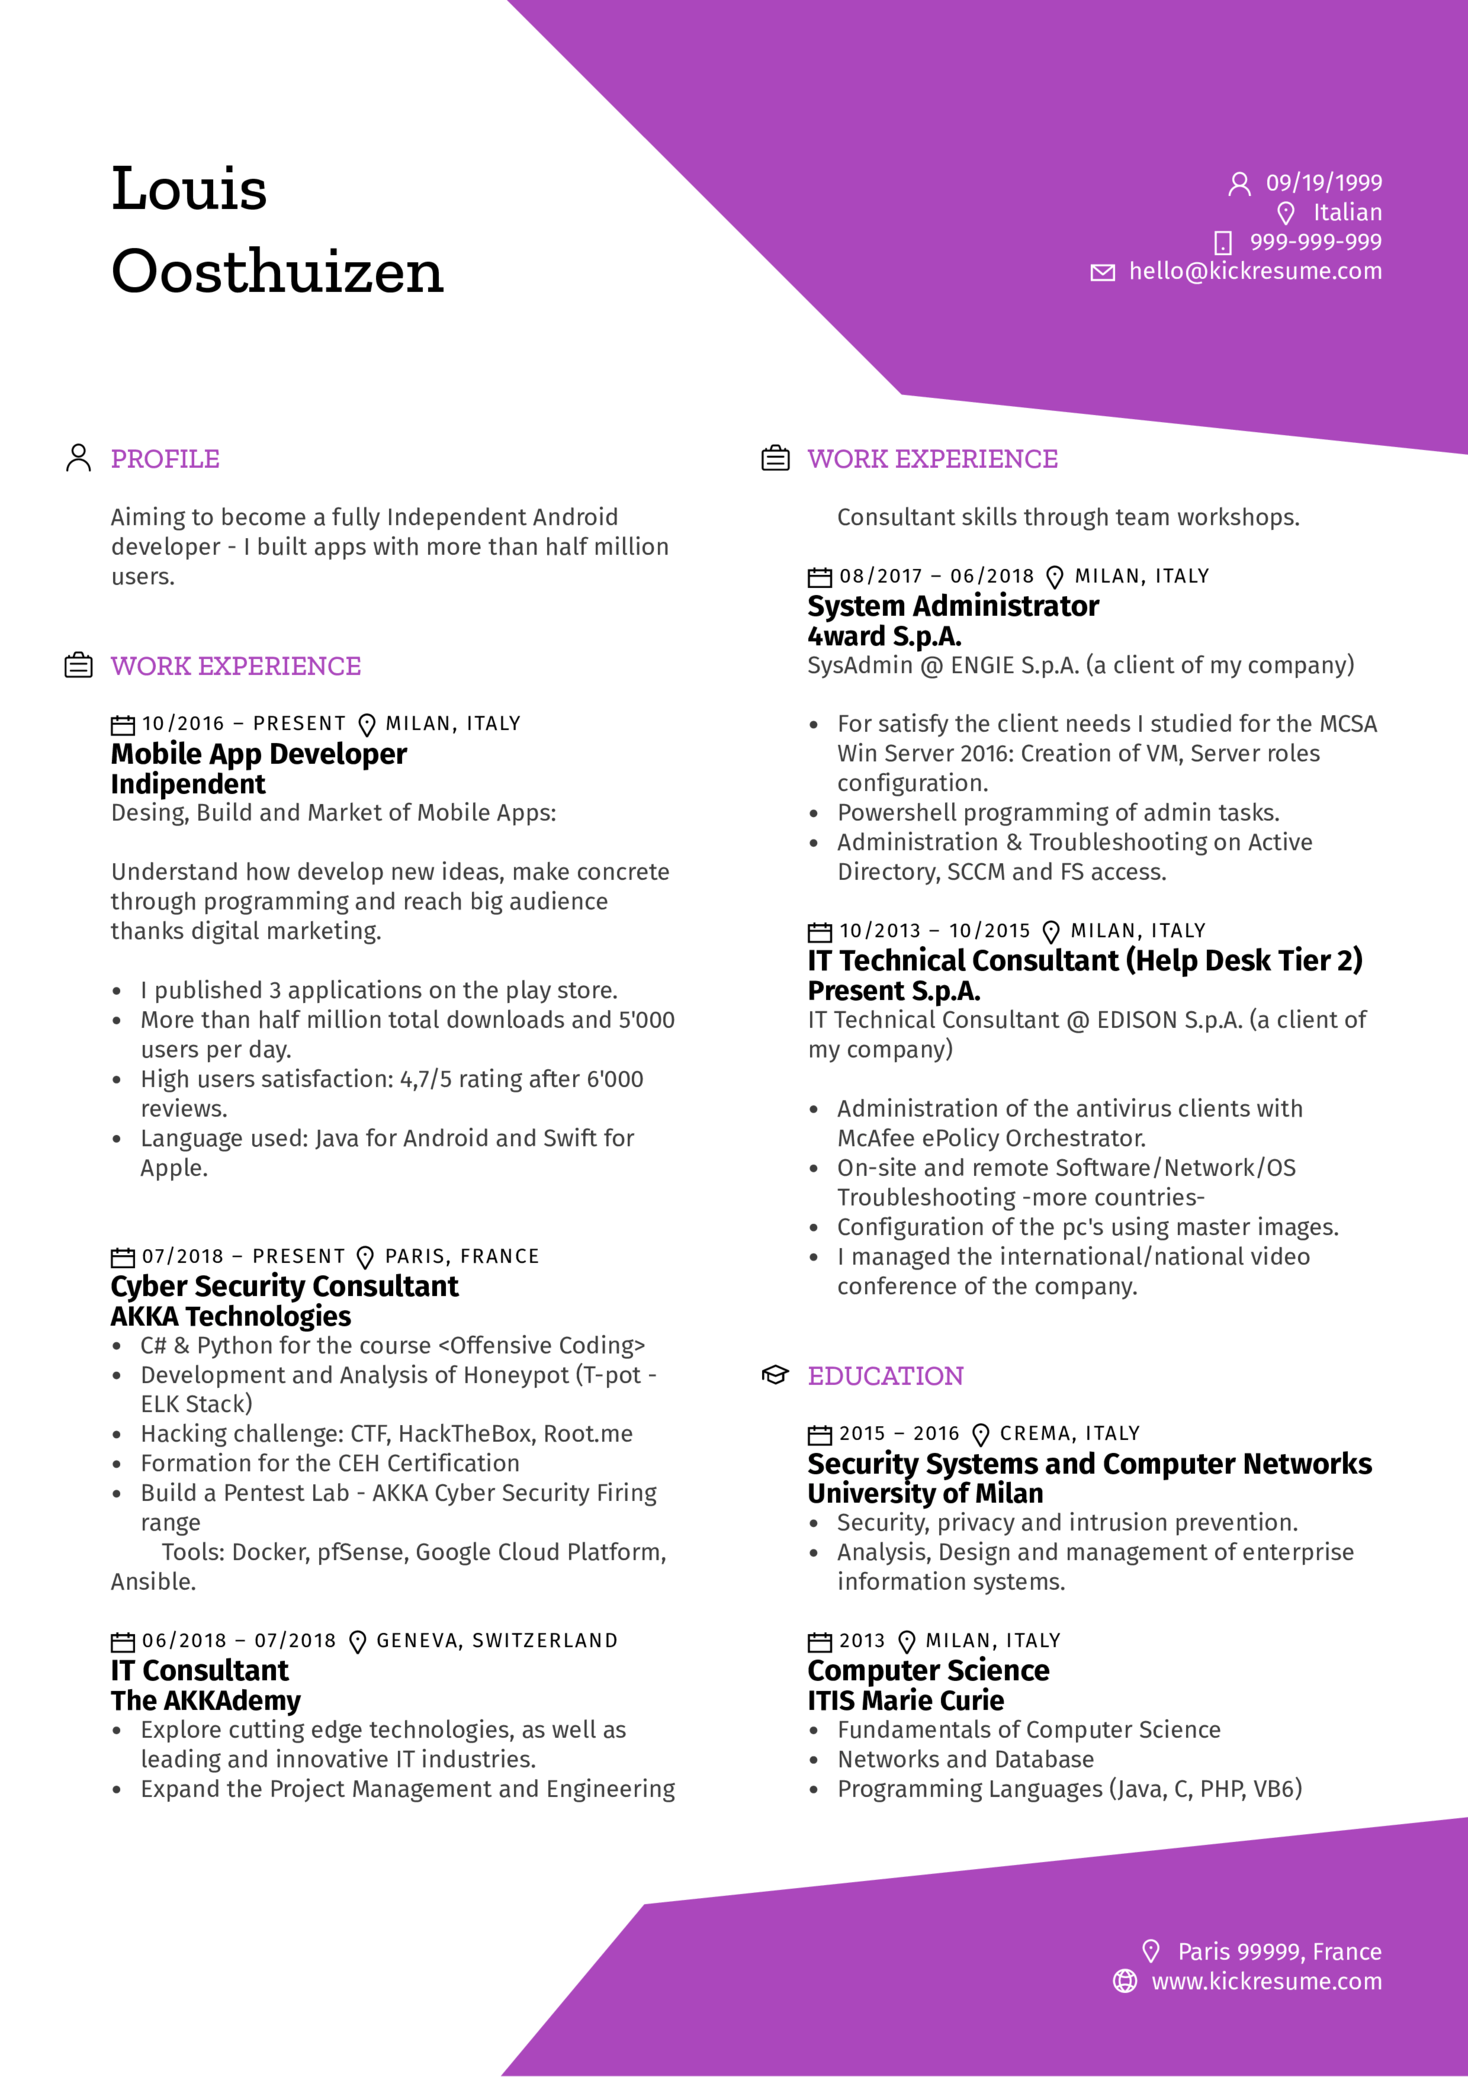 Mobile Software Engineer Resume Example (parte 1)